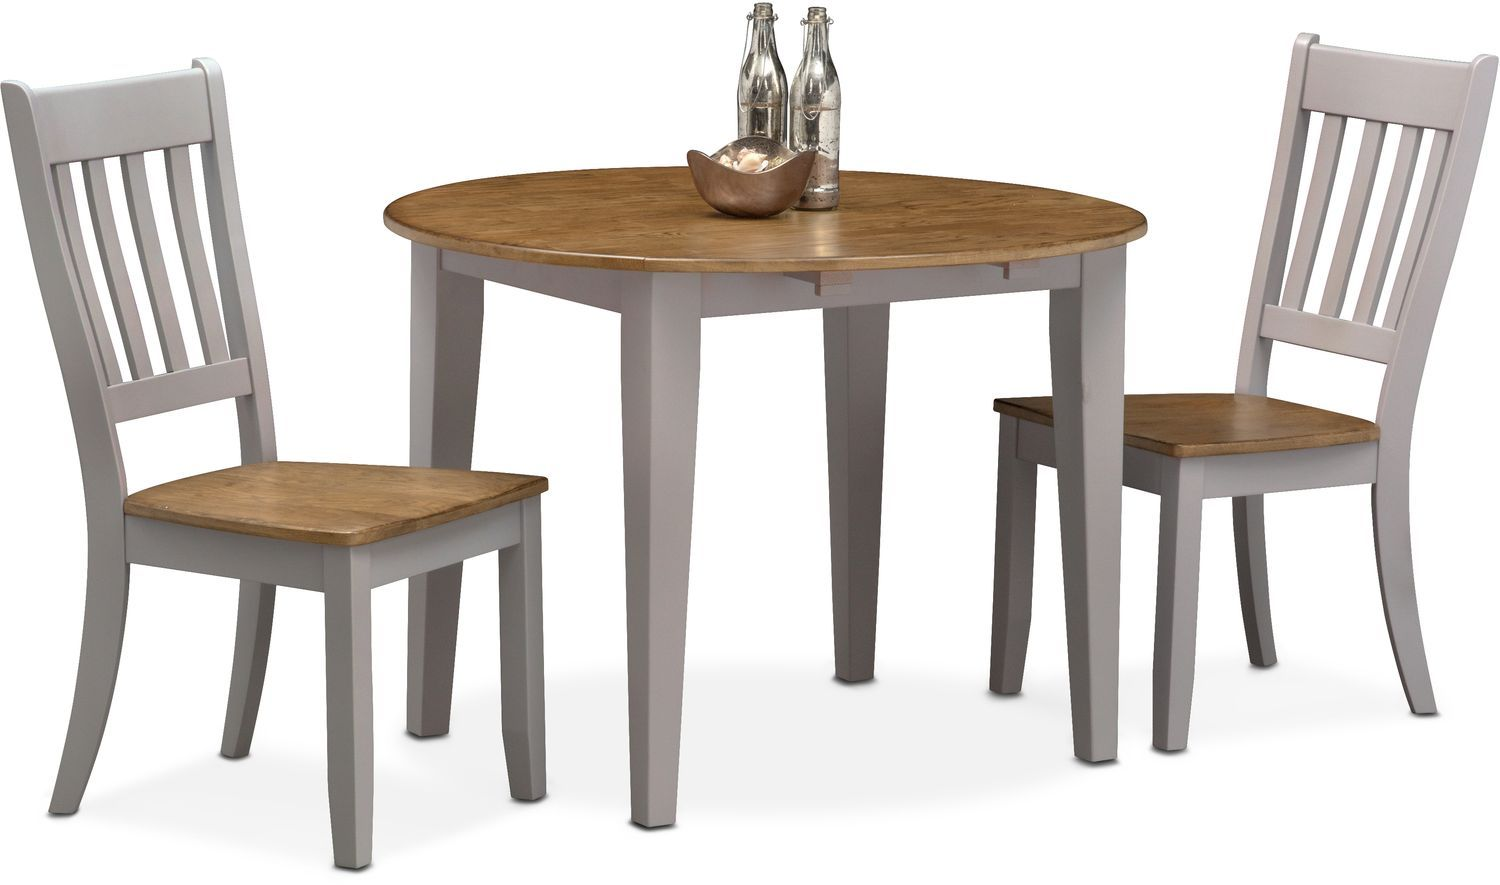 Nantucket Drop Leaf Dining Table And 2 Slat Back Dining Chairs